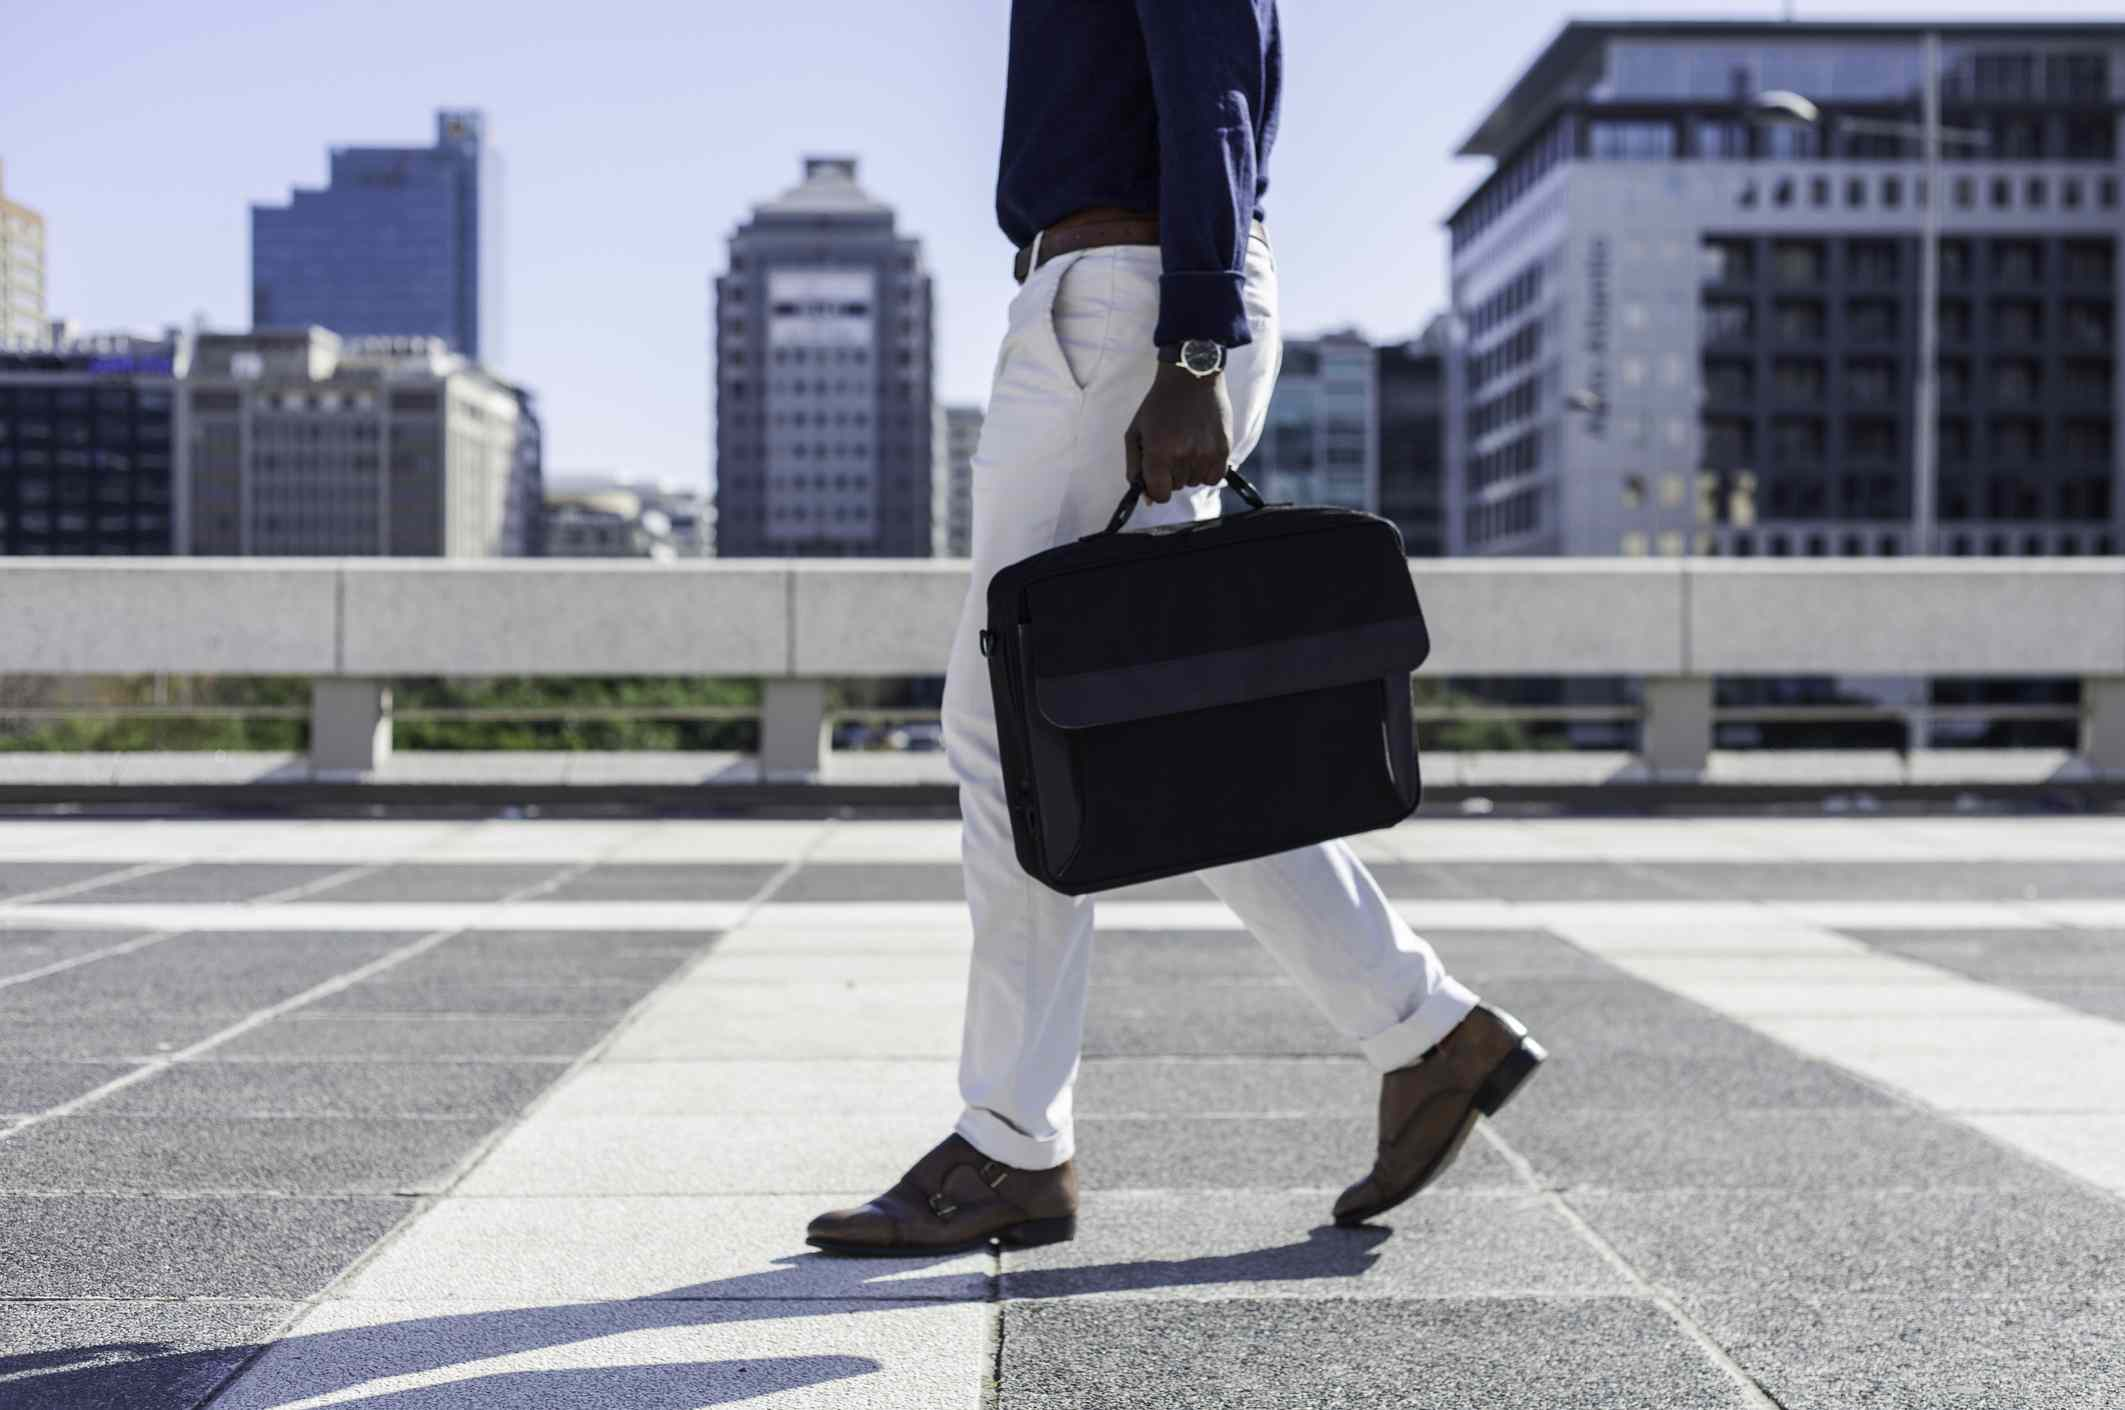 Business man walking down city sidewalk carrying a satchel bag on the way to an interview.